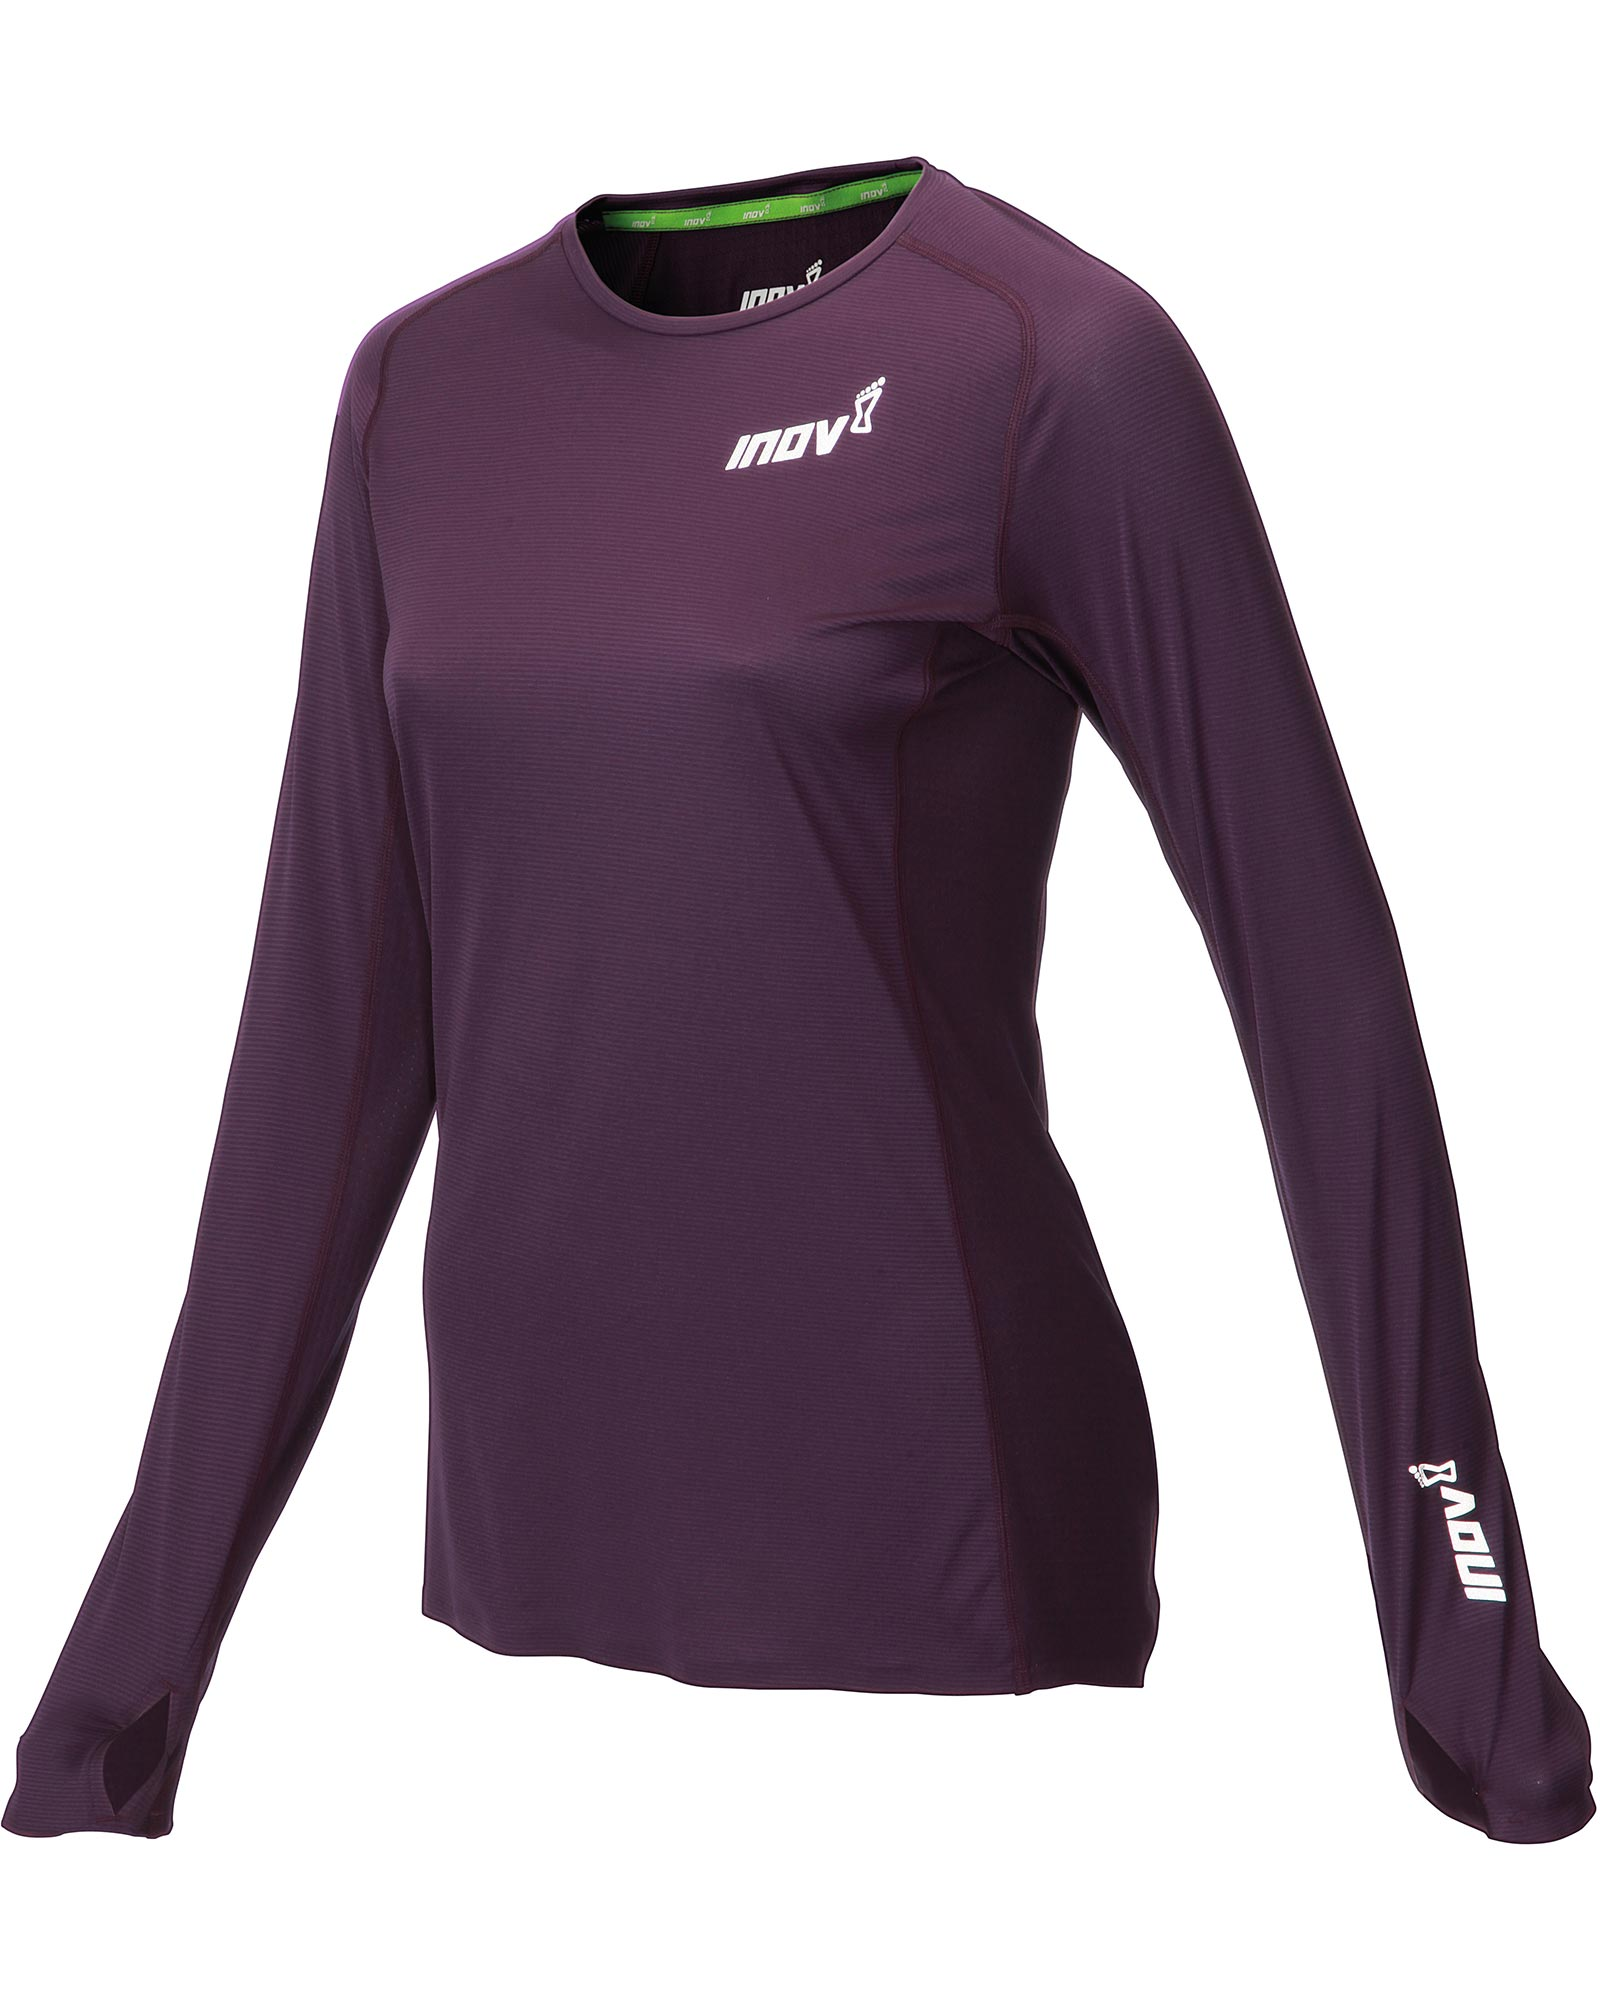 Inov-8 Women's L/S Base Elite Top 0